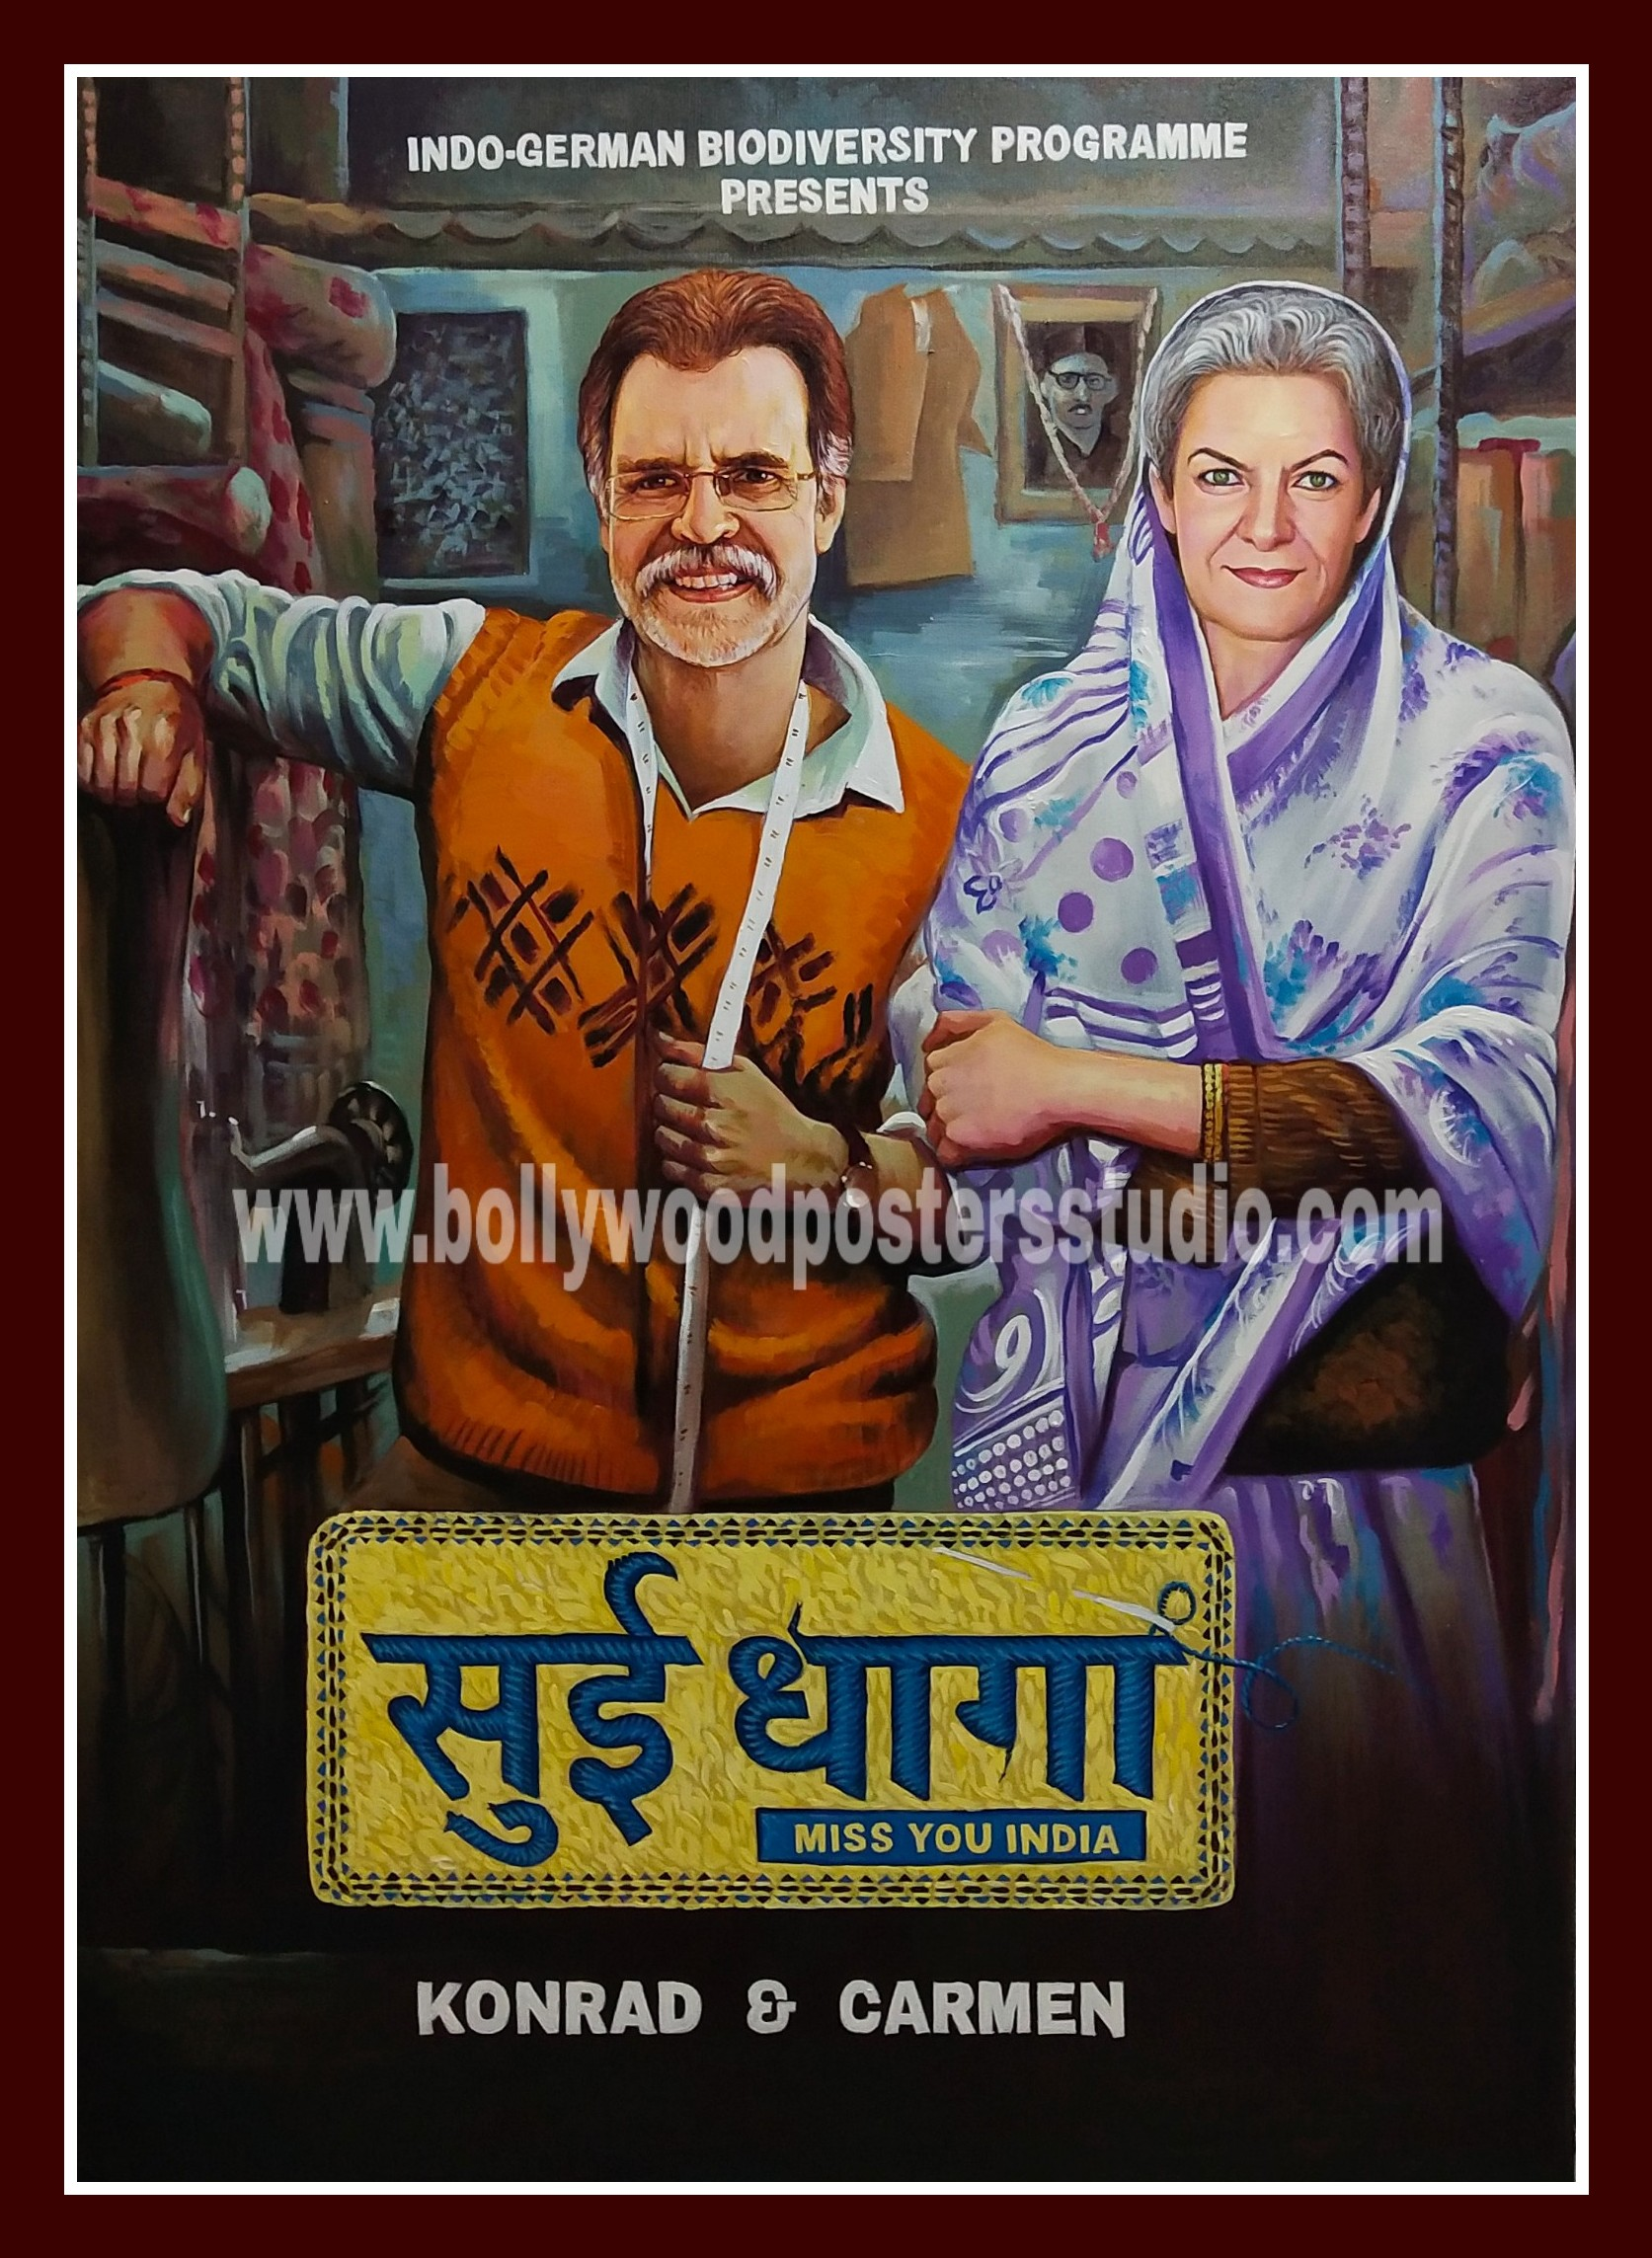 Bollywood poster customized design